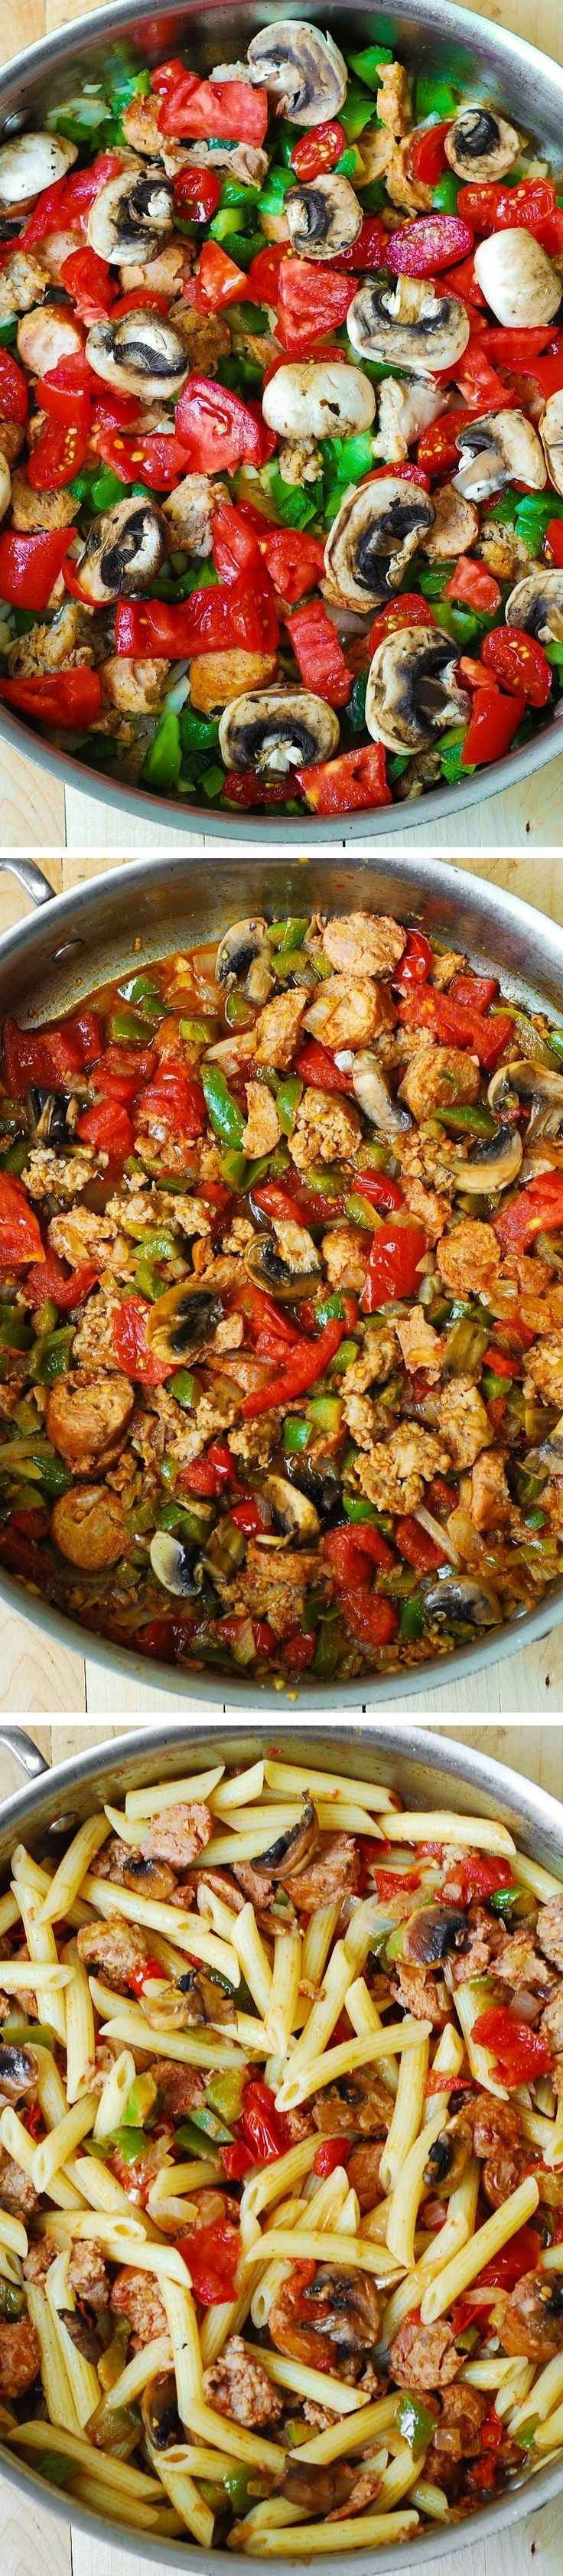 Italian Sausage Pasta with Vegetables. Italian sausage is seared with bell peppers, mushrooms, onions, fresh tomatoes in cajun spices, with a splash of red wine!